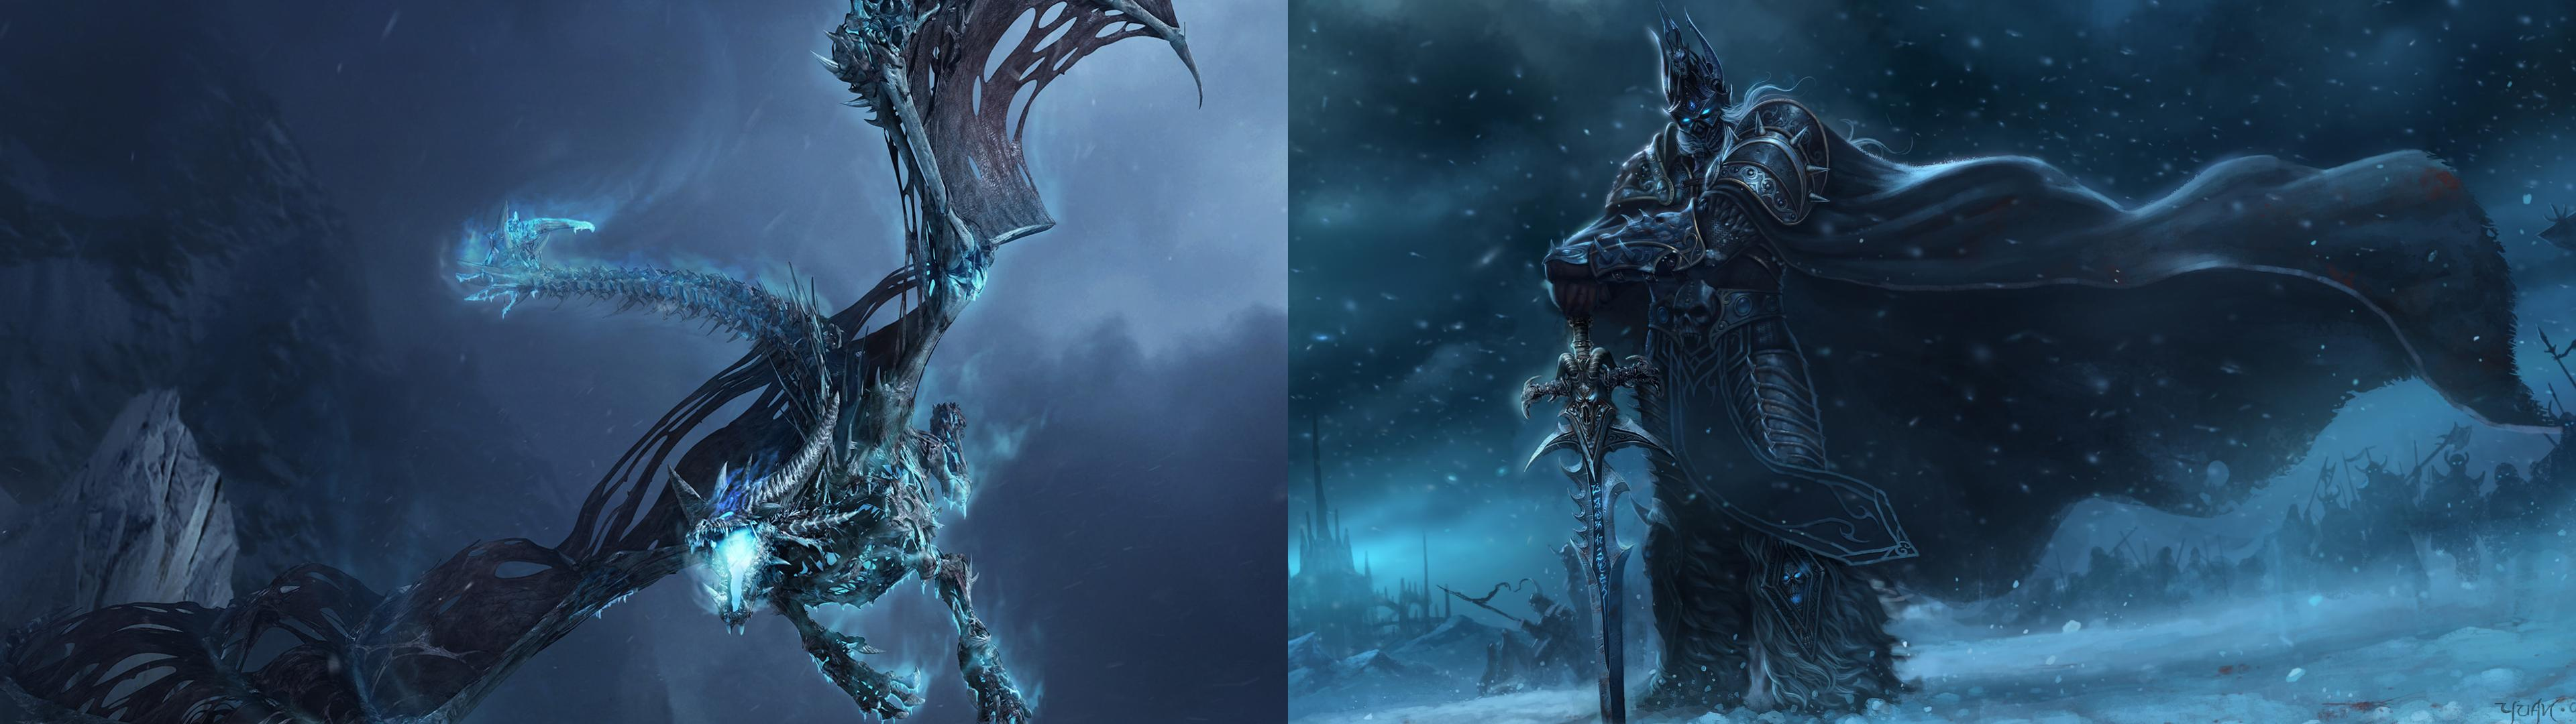 Dual Monitor Lich King Wallpaper I Threw Together [Individual Sources 3840x1080